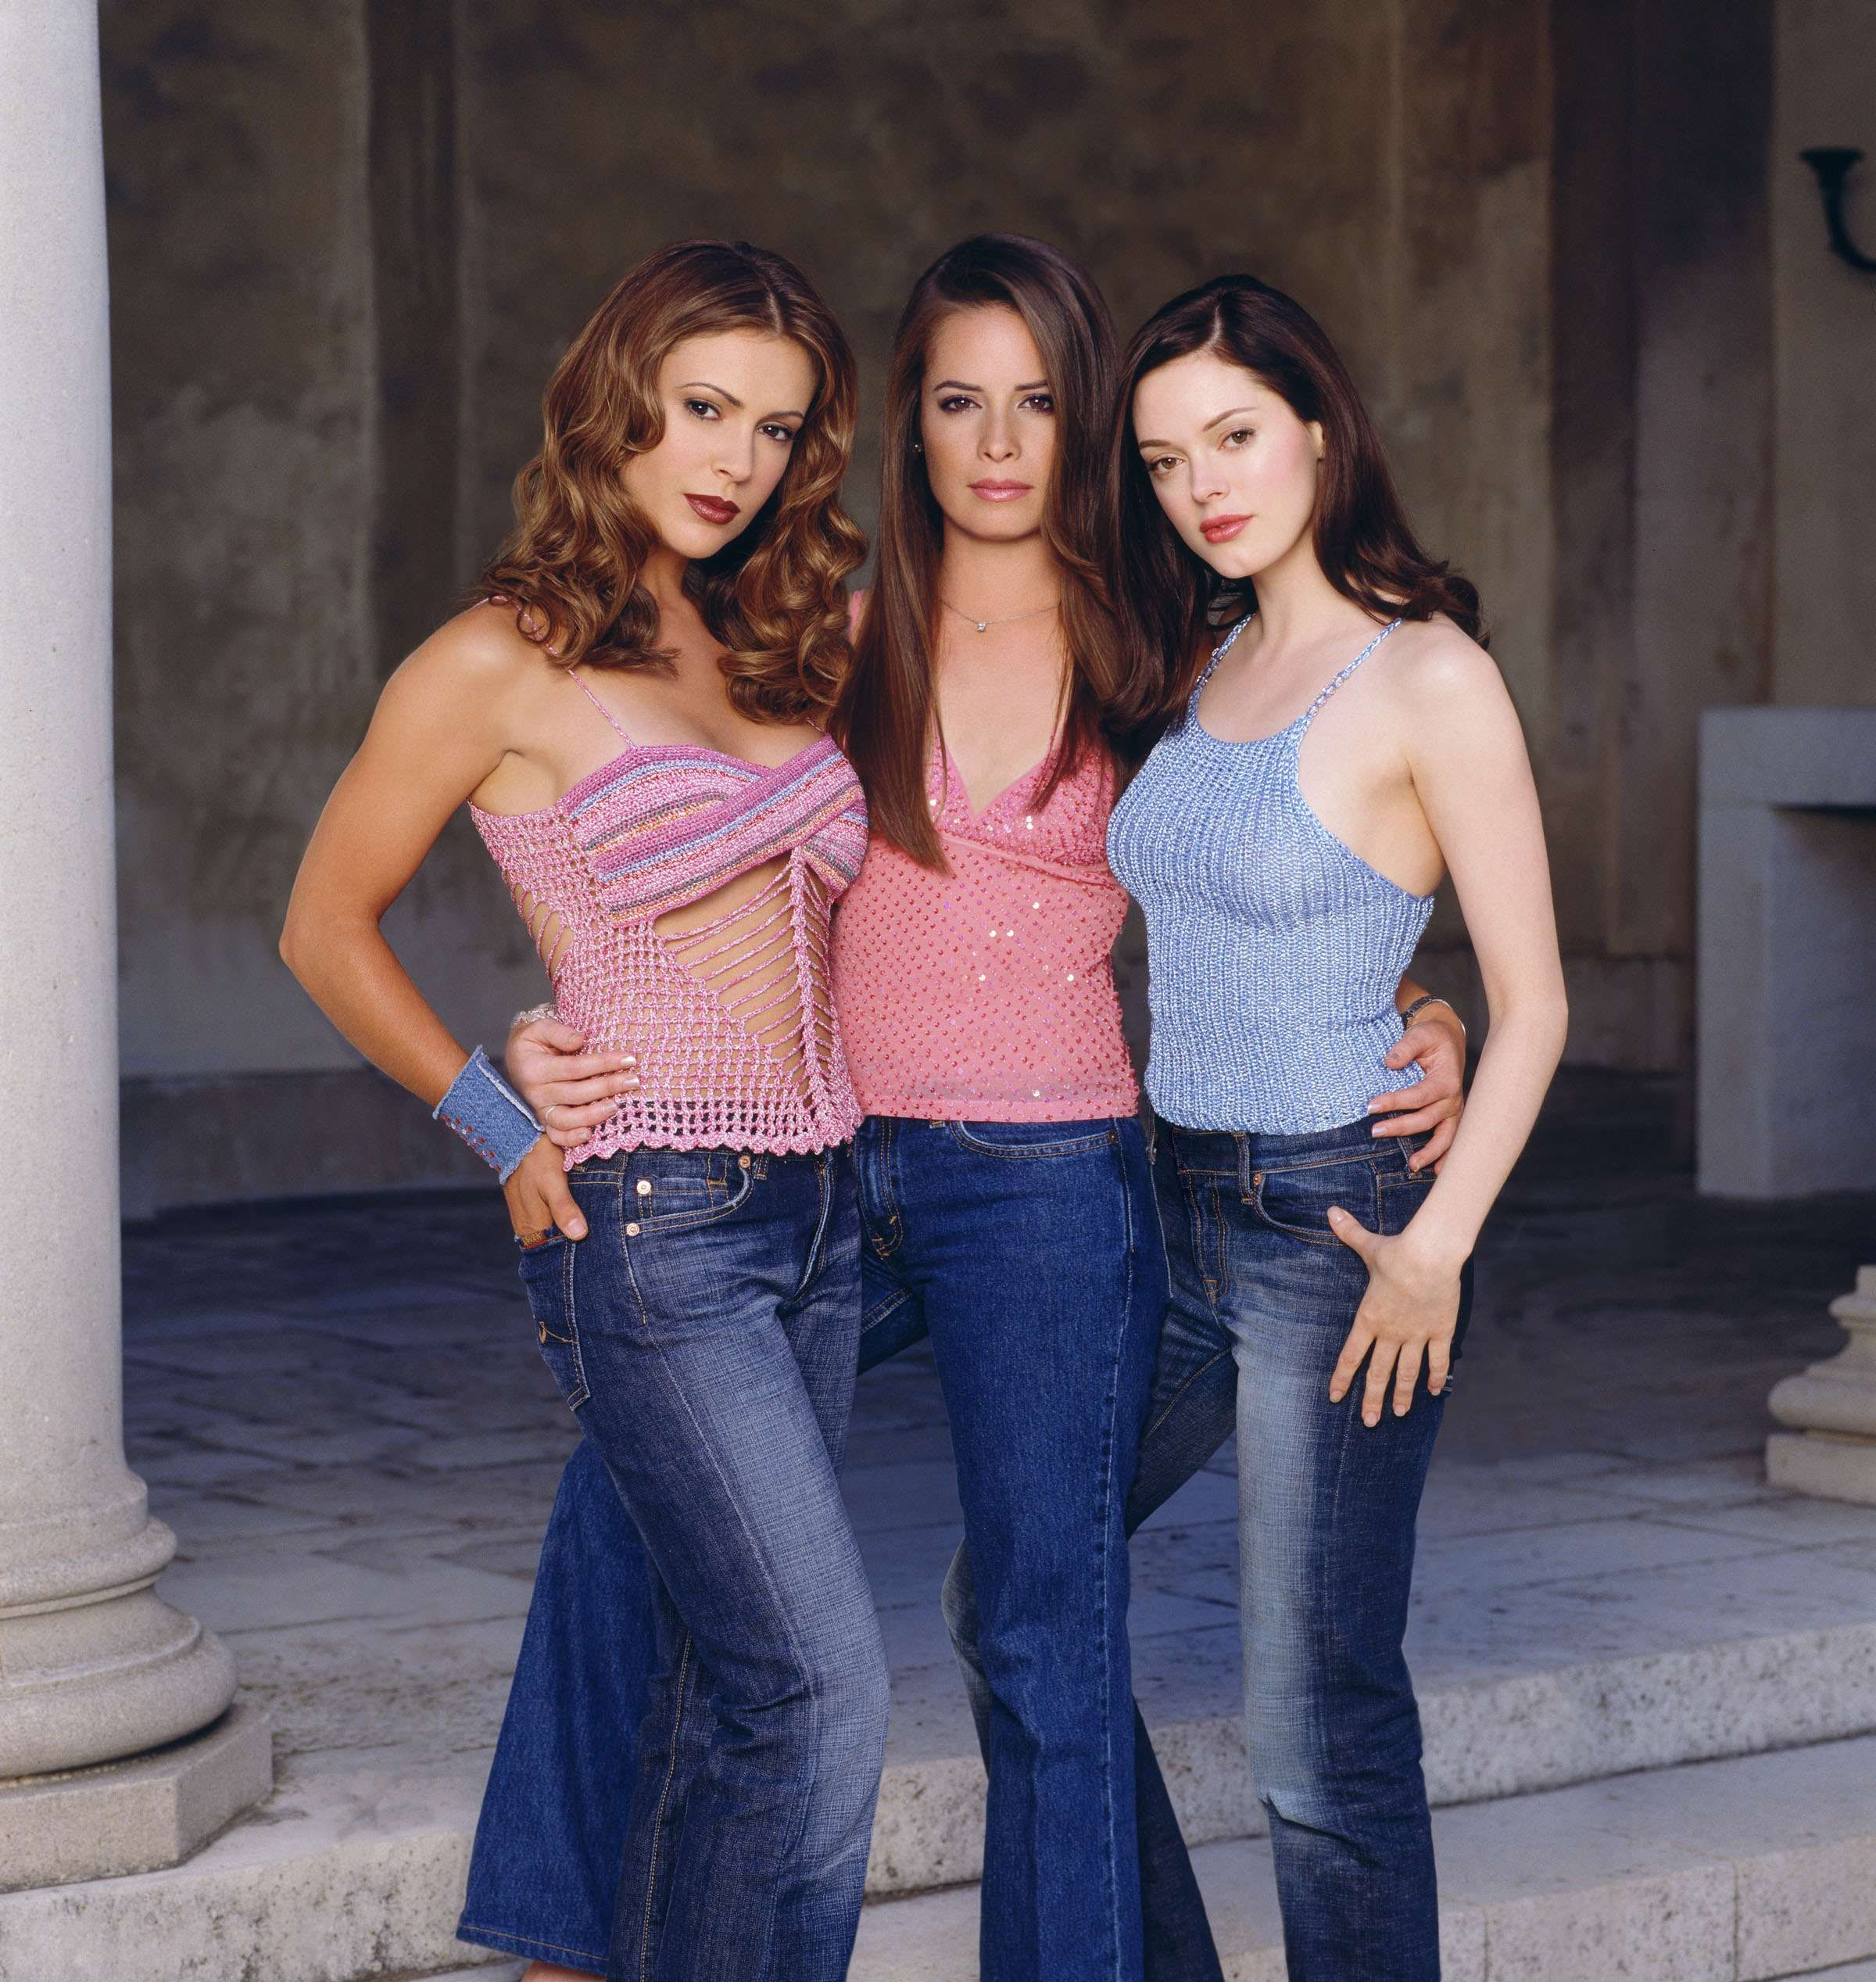 Alyssa Milano Movie Clips pin on tv witches